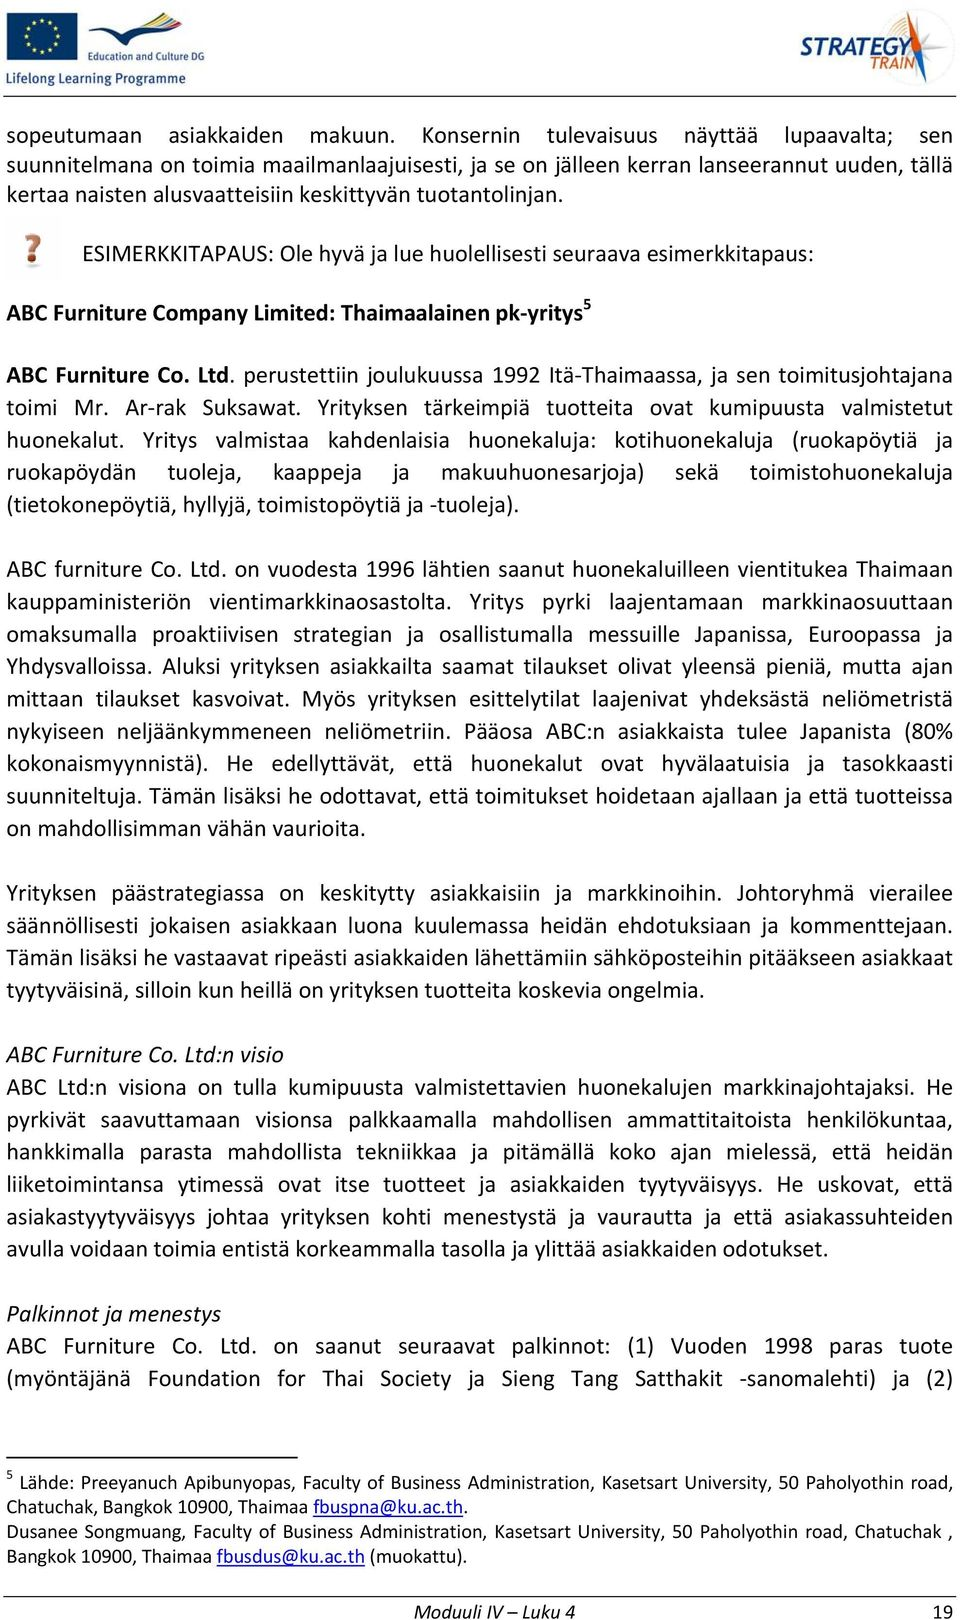 ESIMERKKITAPAUS: Ole hyvä ja lue huolellisesti seuraava esimerkkitapaus: ABC Furniture Company Limited: Thaimaalainen pk yritys 5 ABC Furniture Co. Ltd.